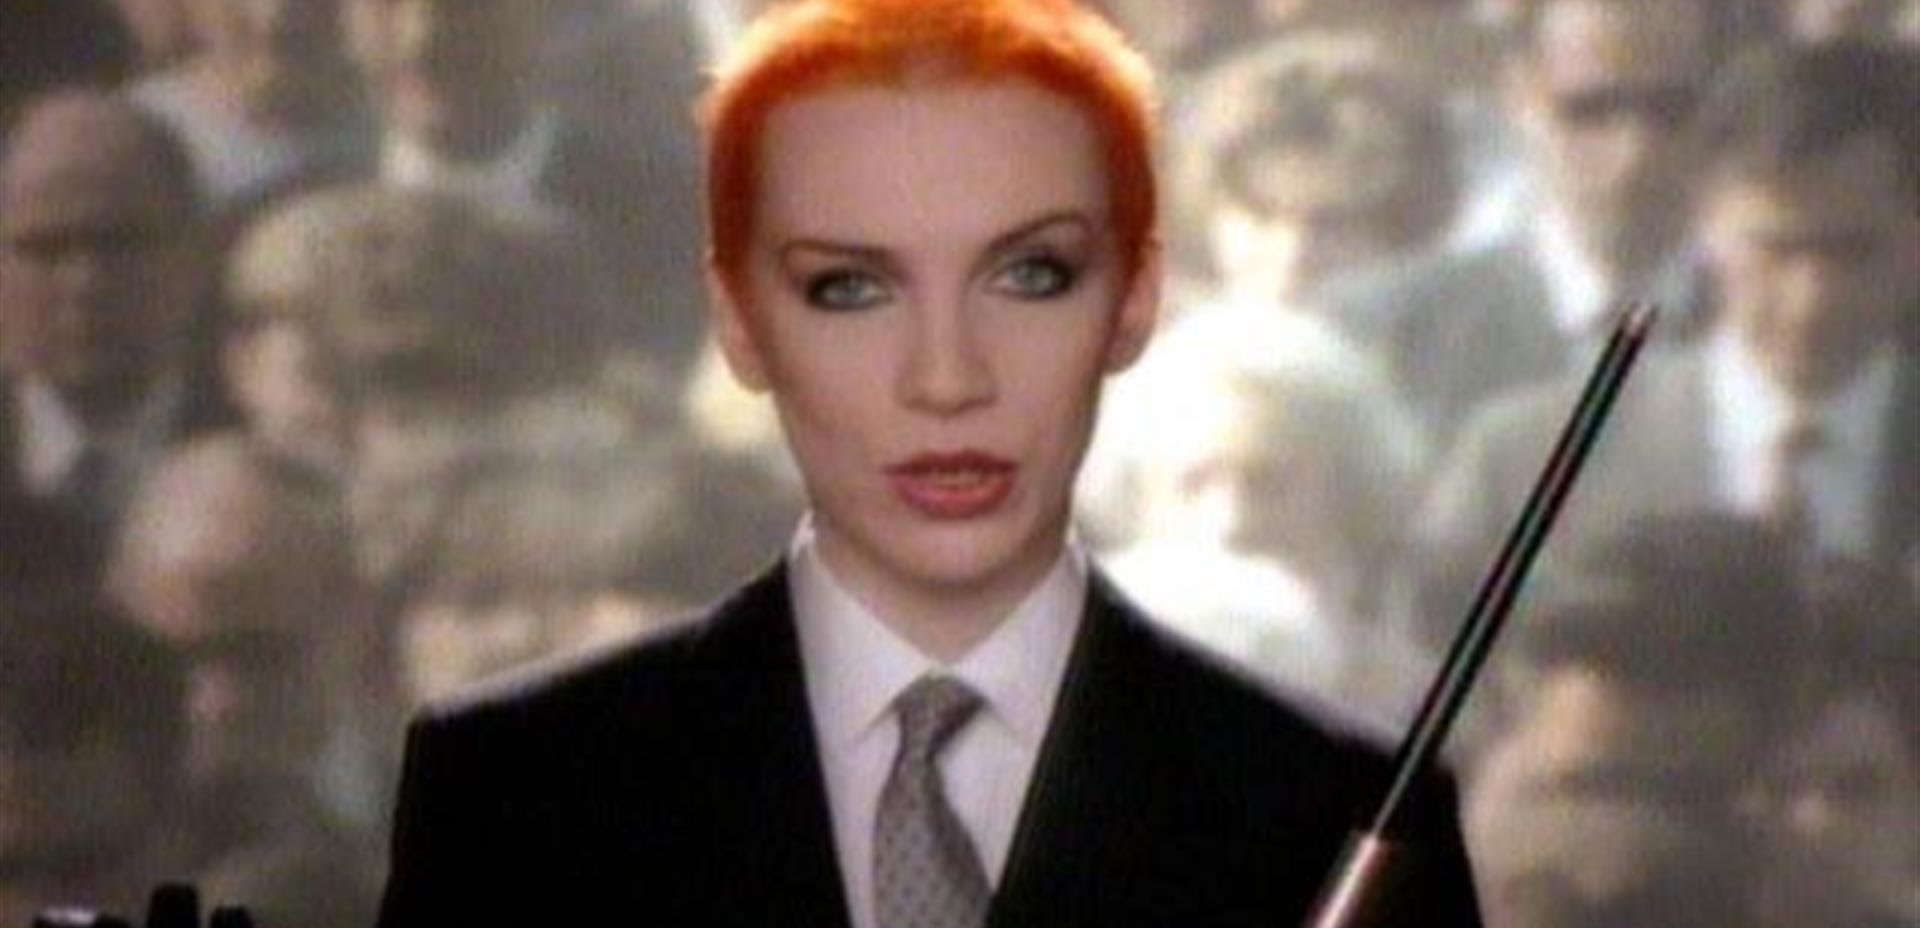 High Quality eurythmics Blank Meme Template